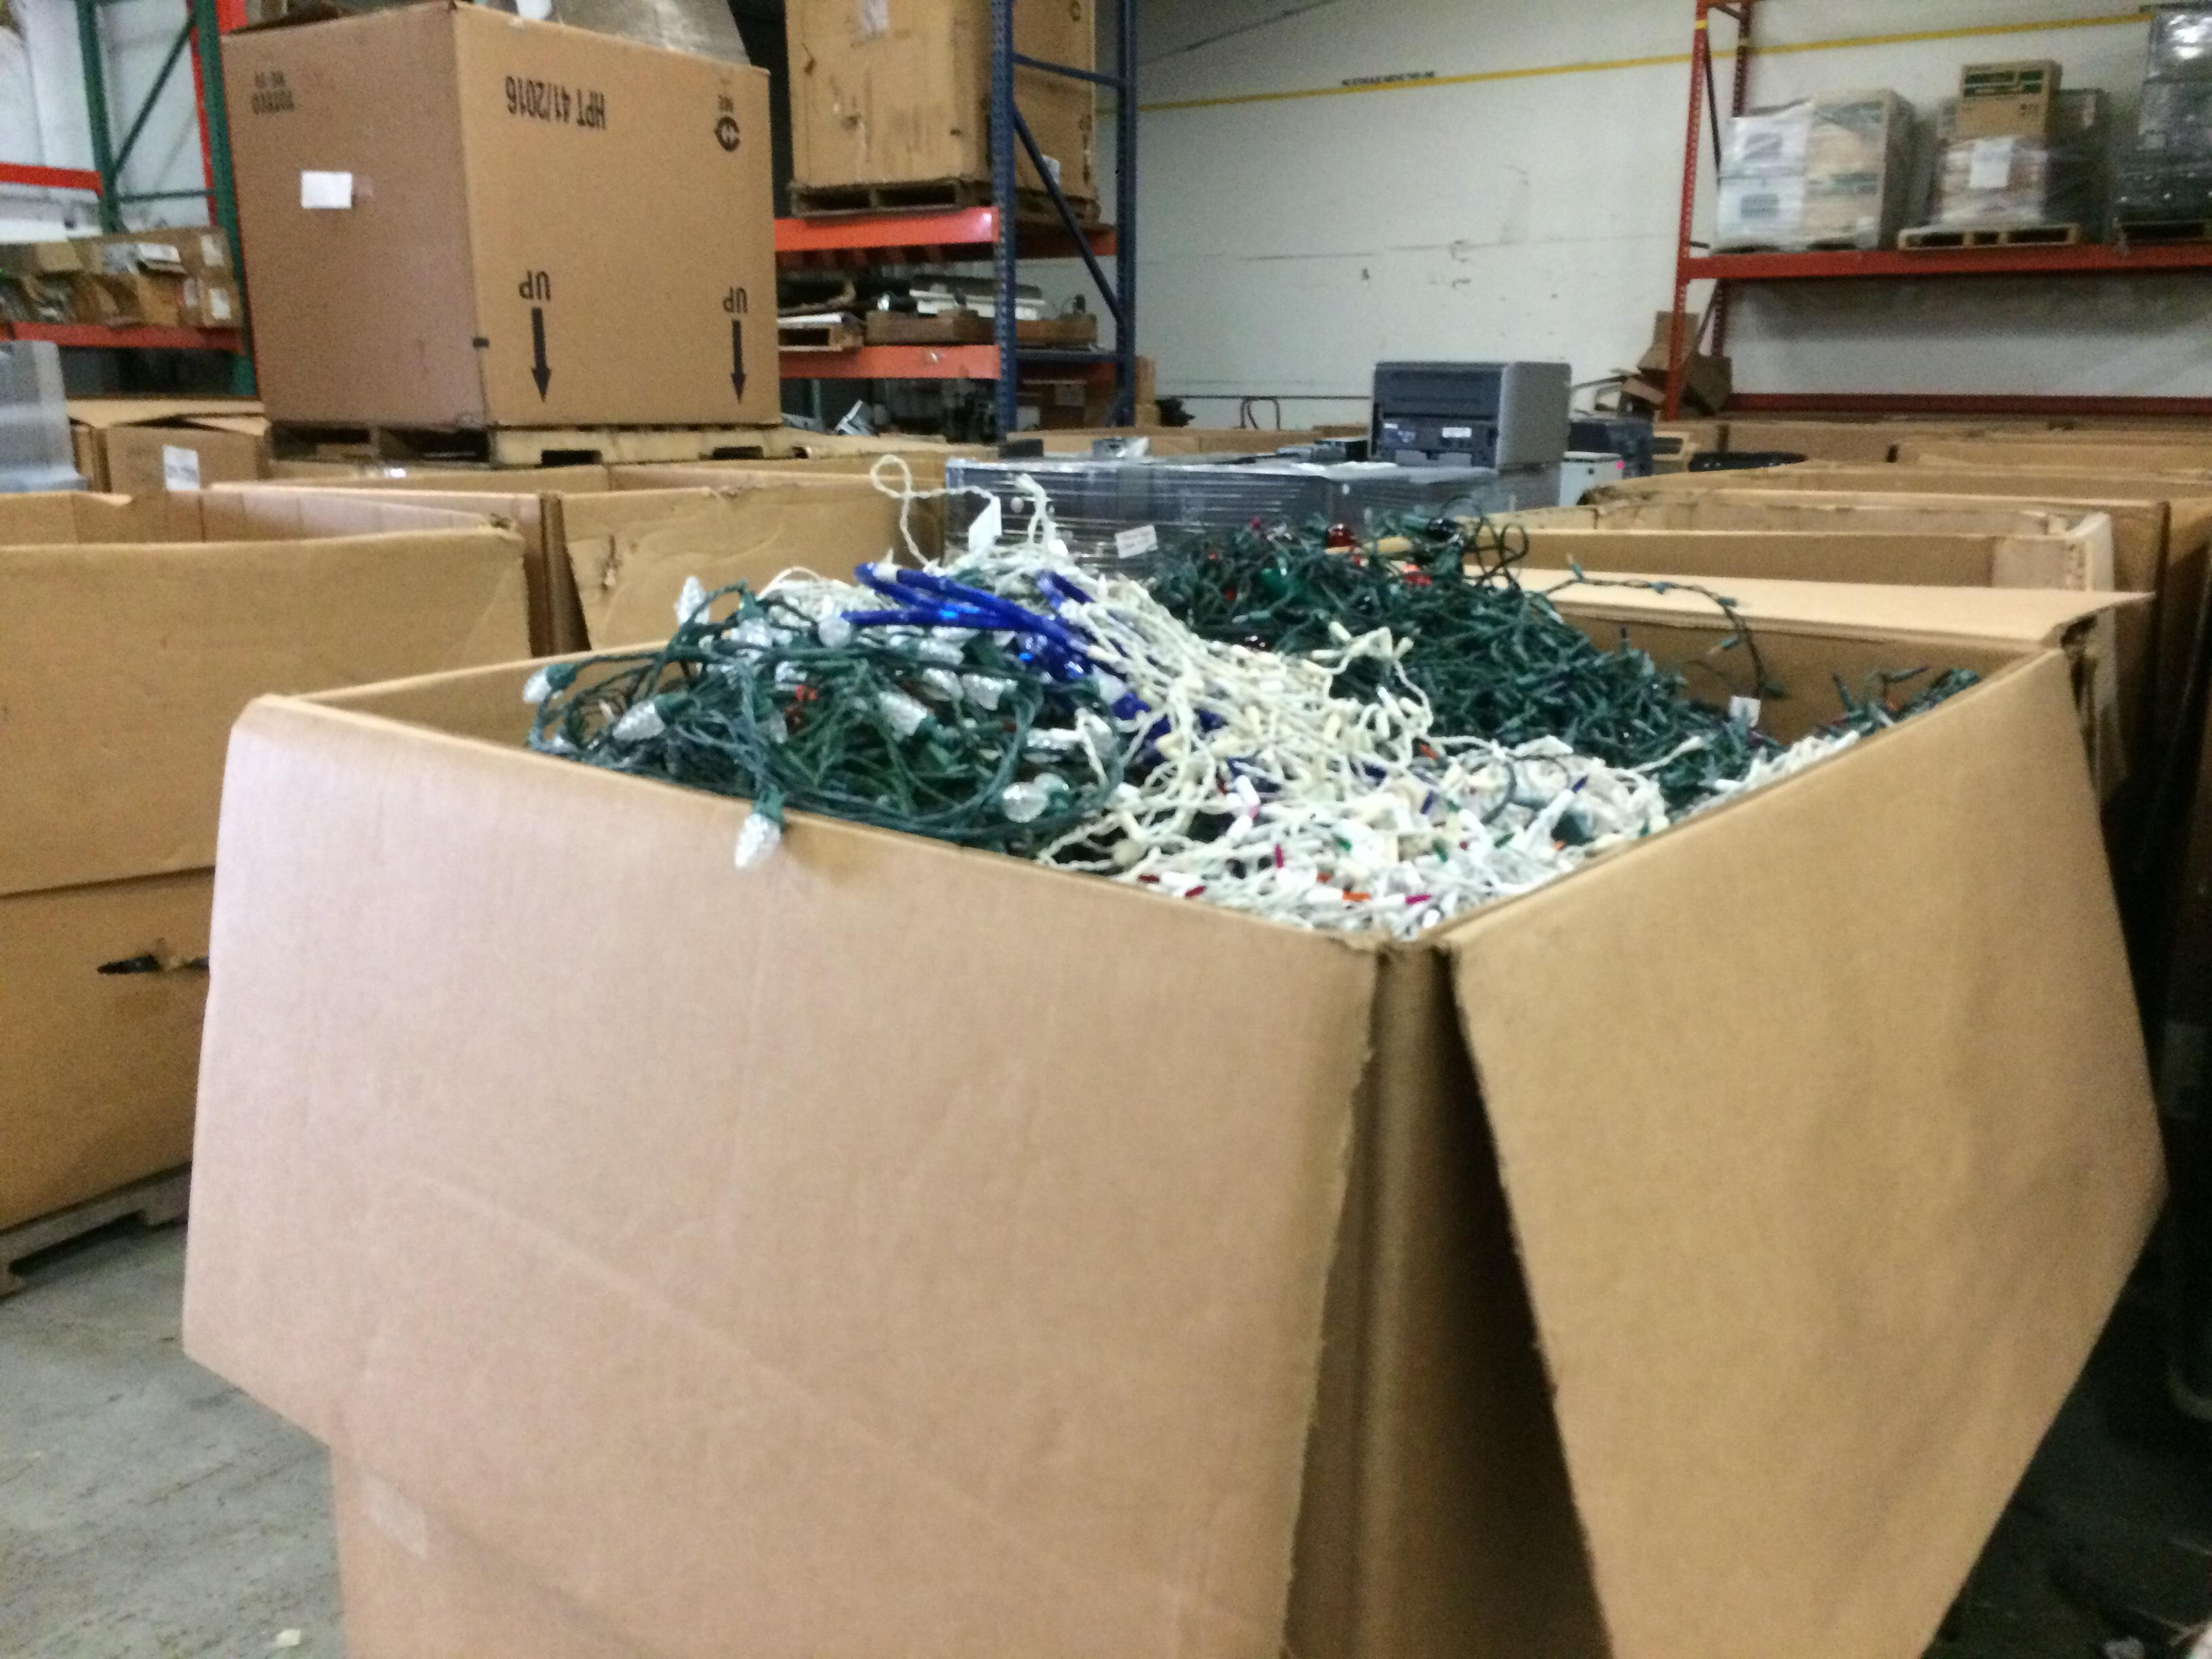 The season of recycling: How to properly dispose of Christmas decorations